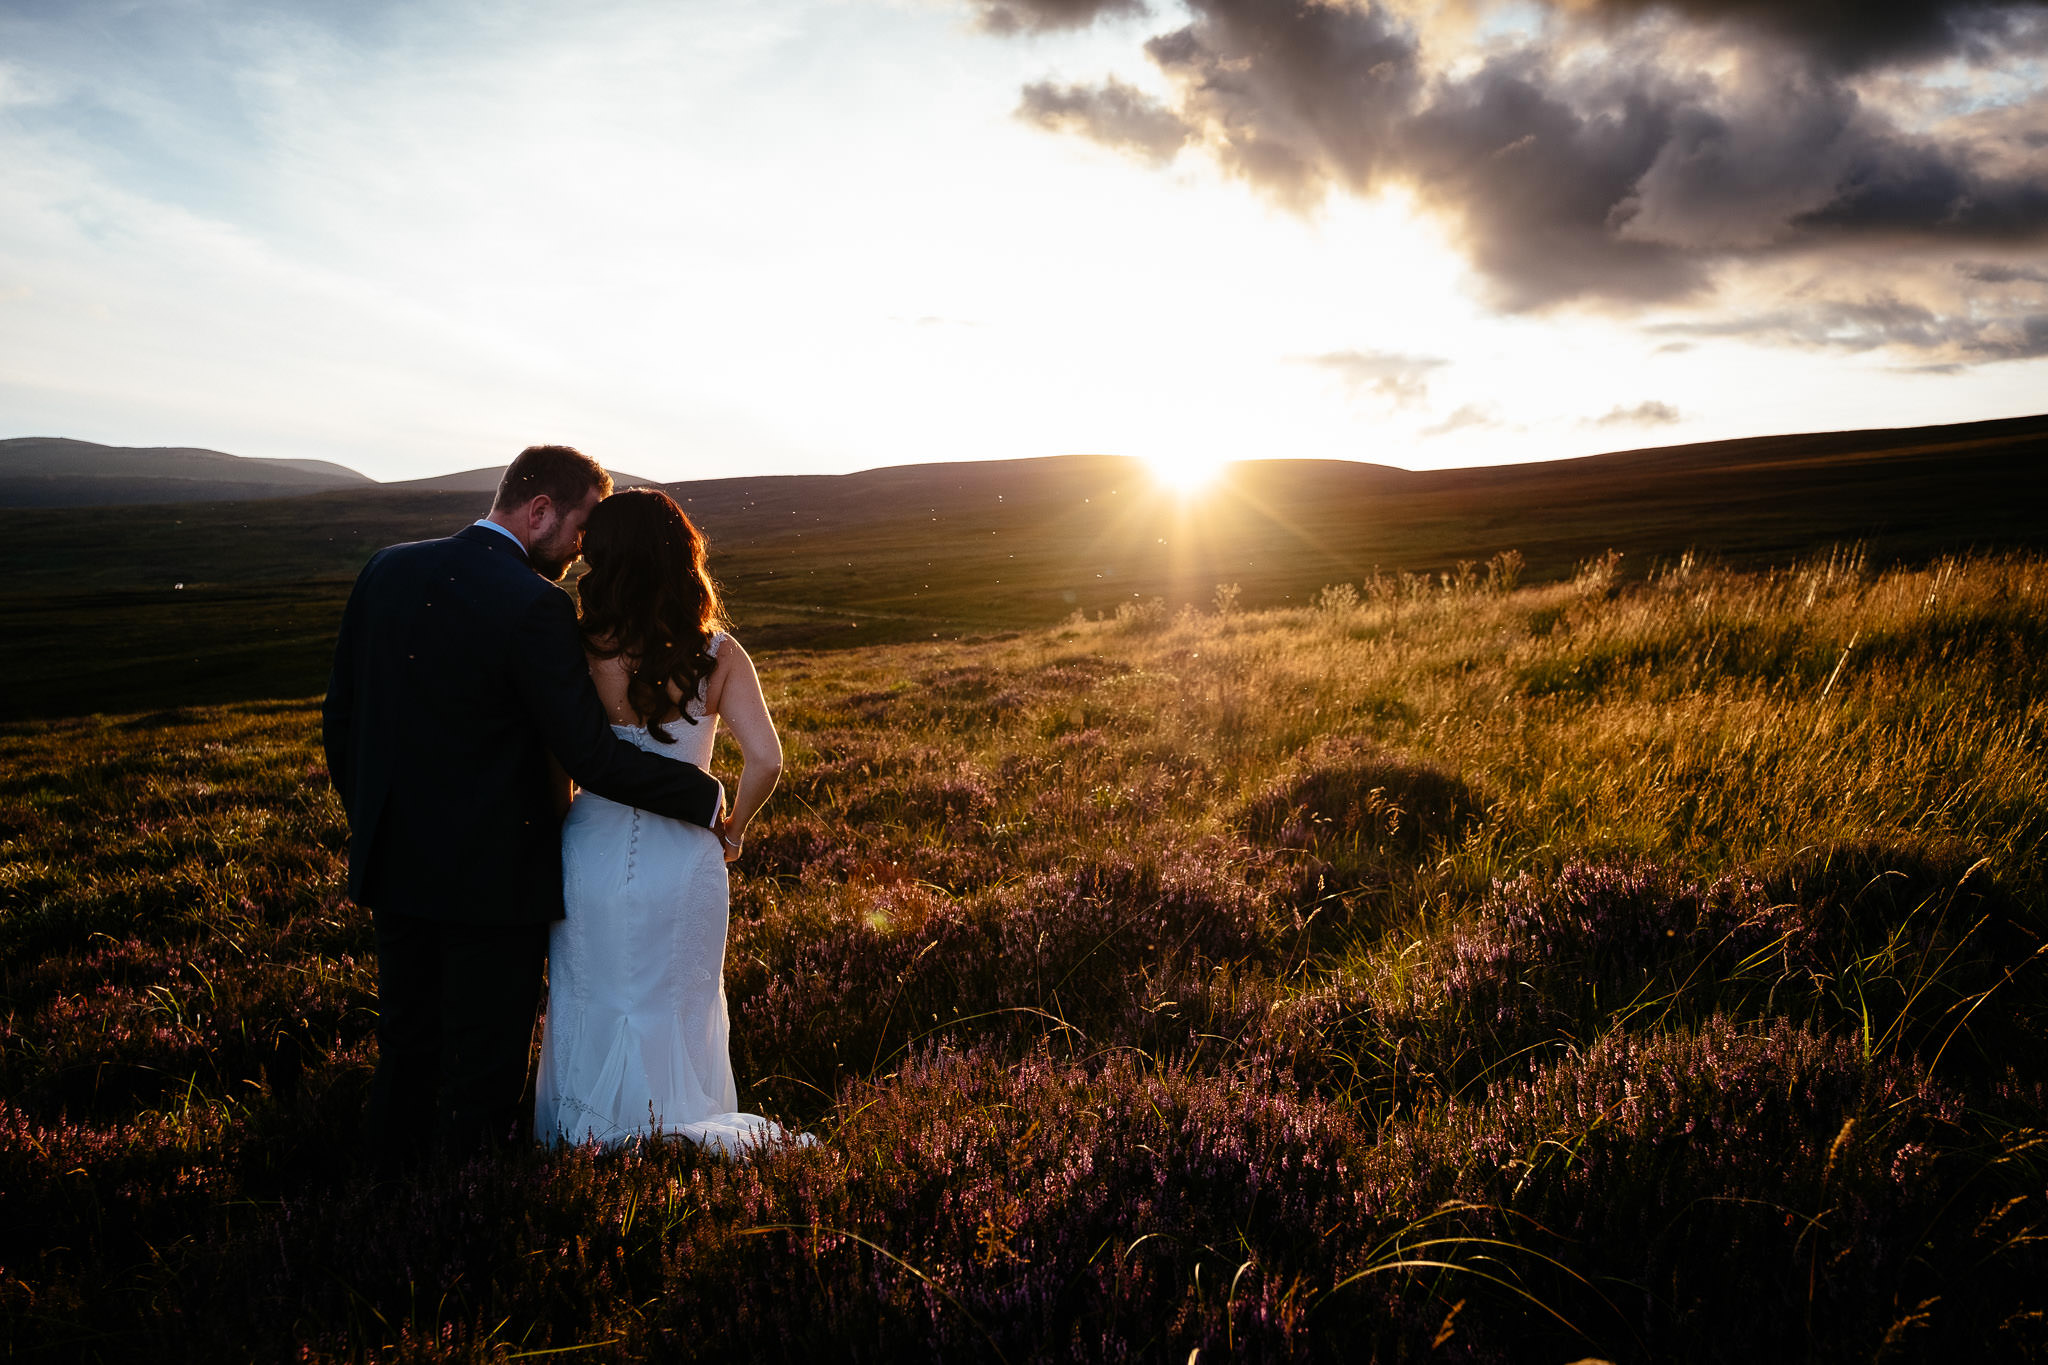 wedding photographers dublin ireland 1137 2